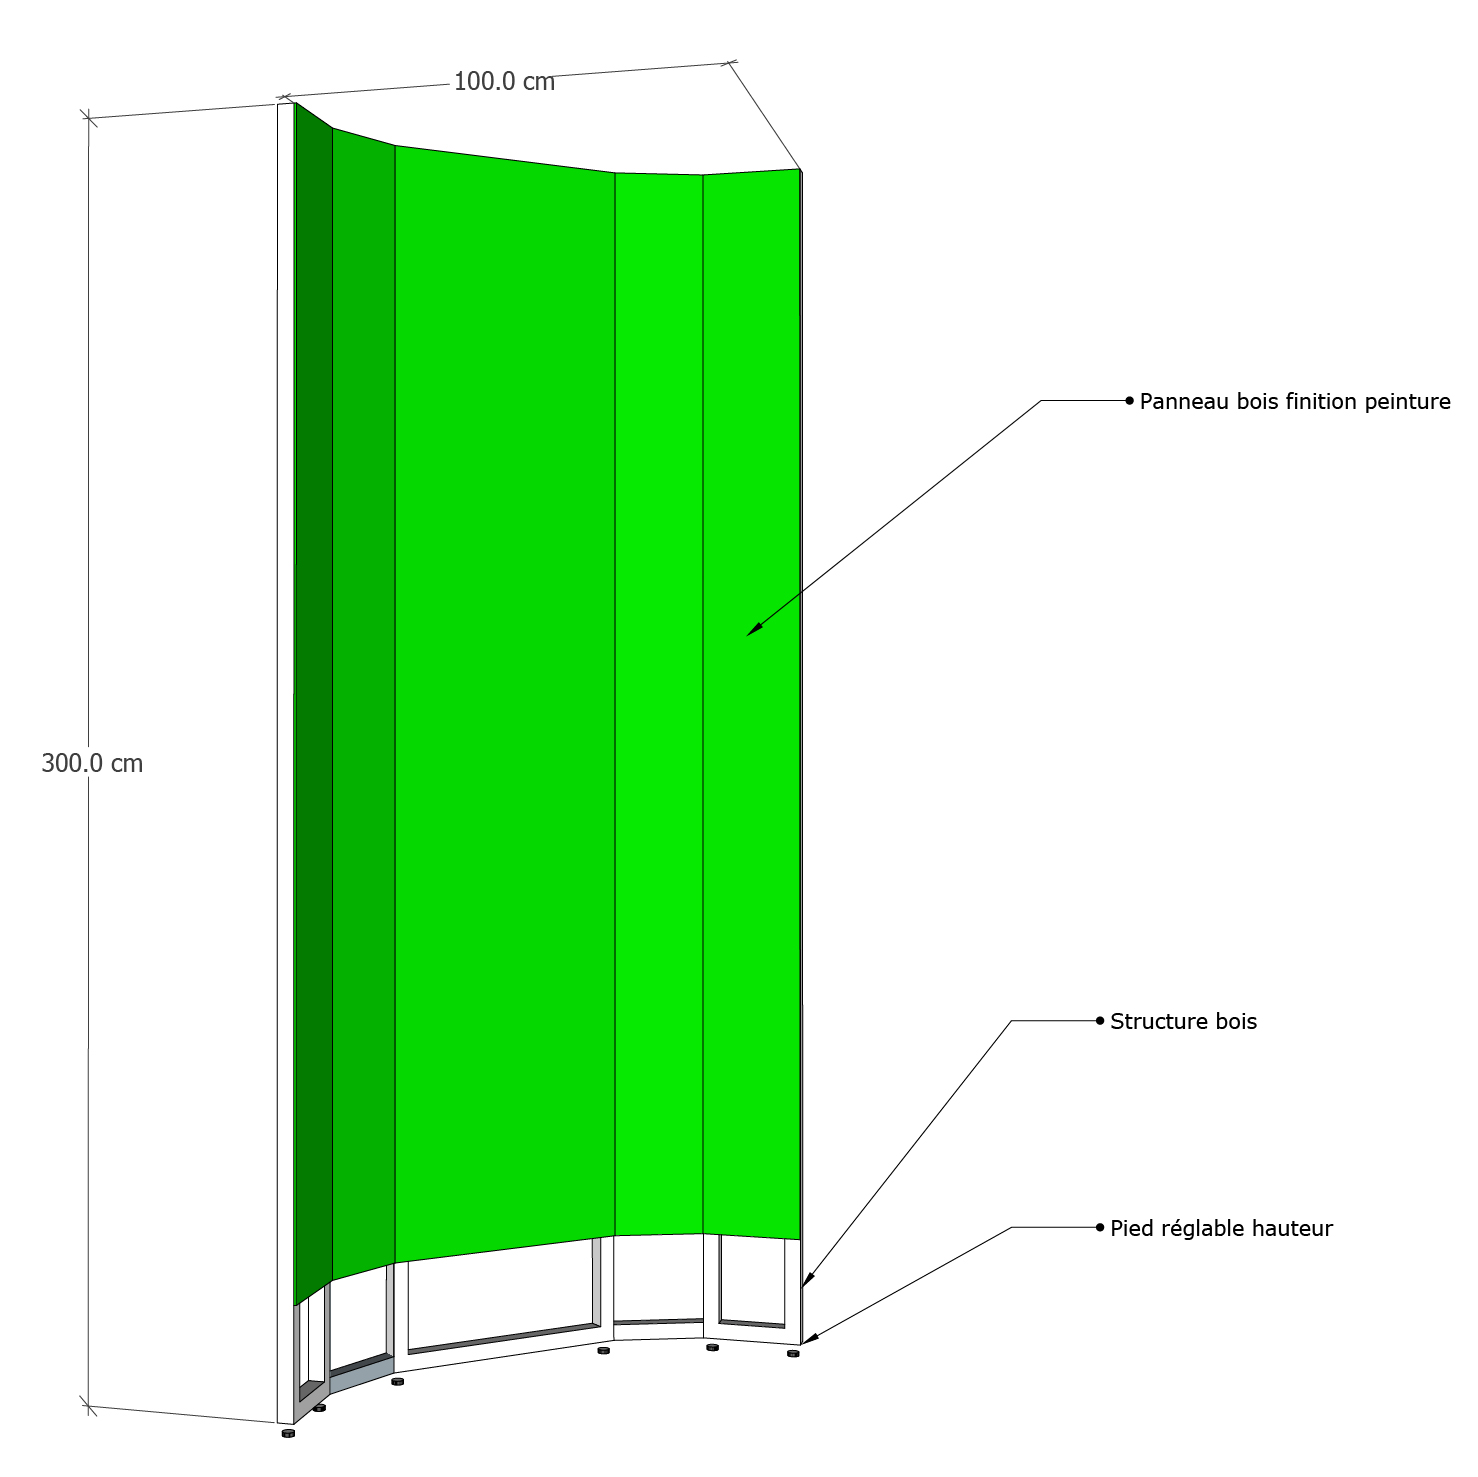 Structure fond vert mur angle courbe